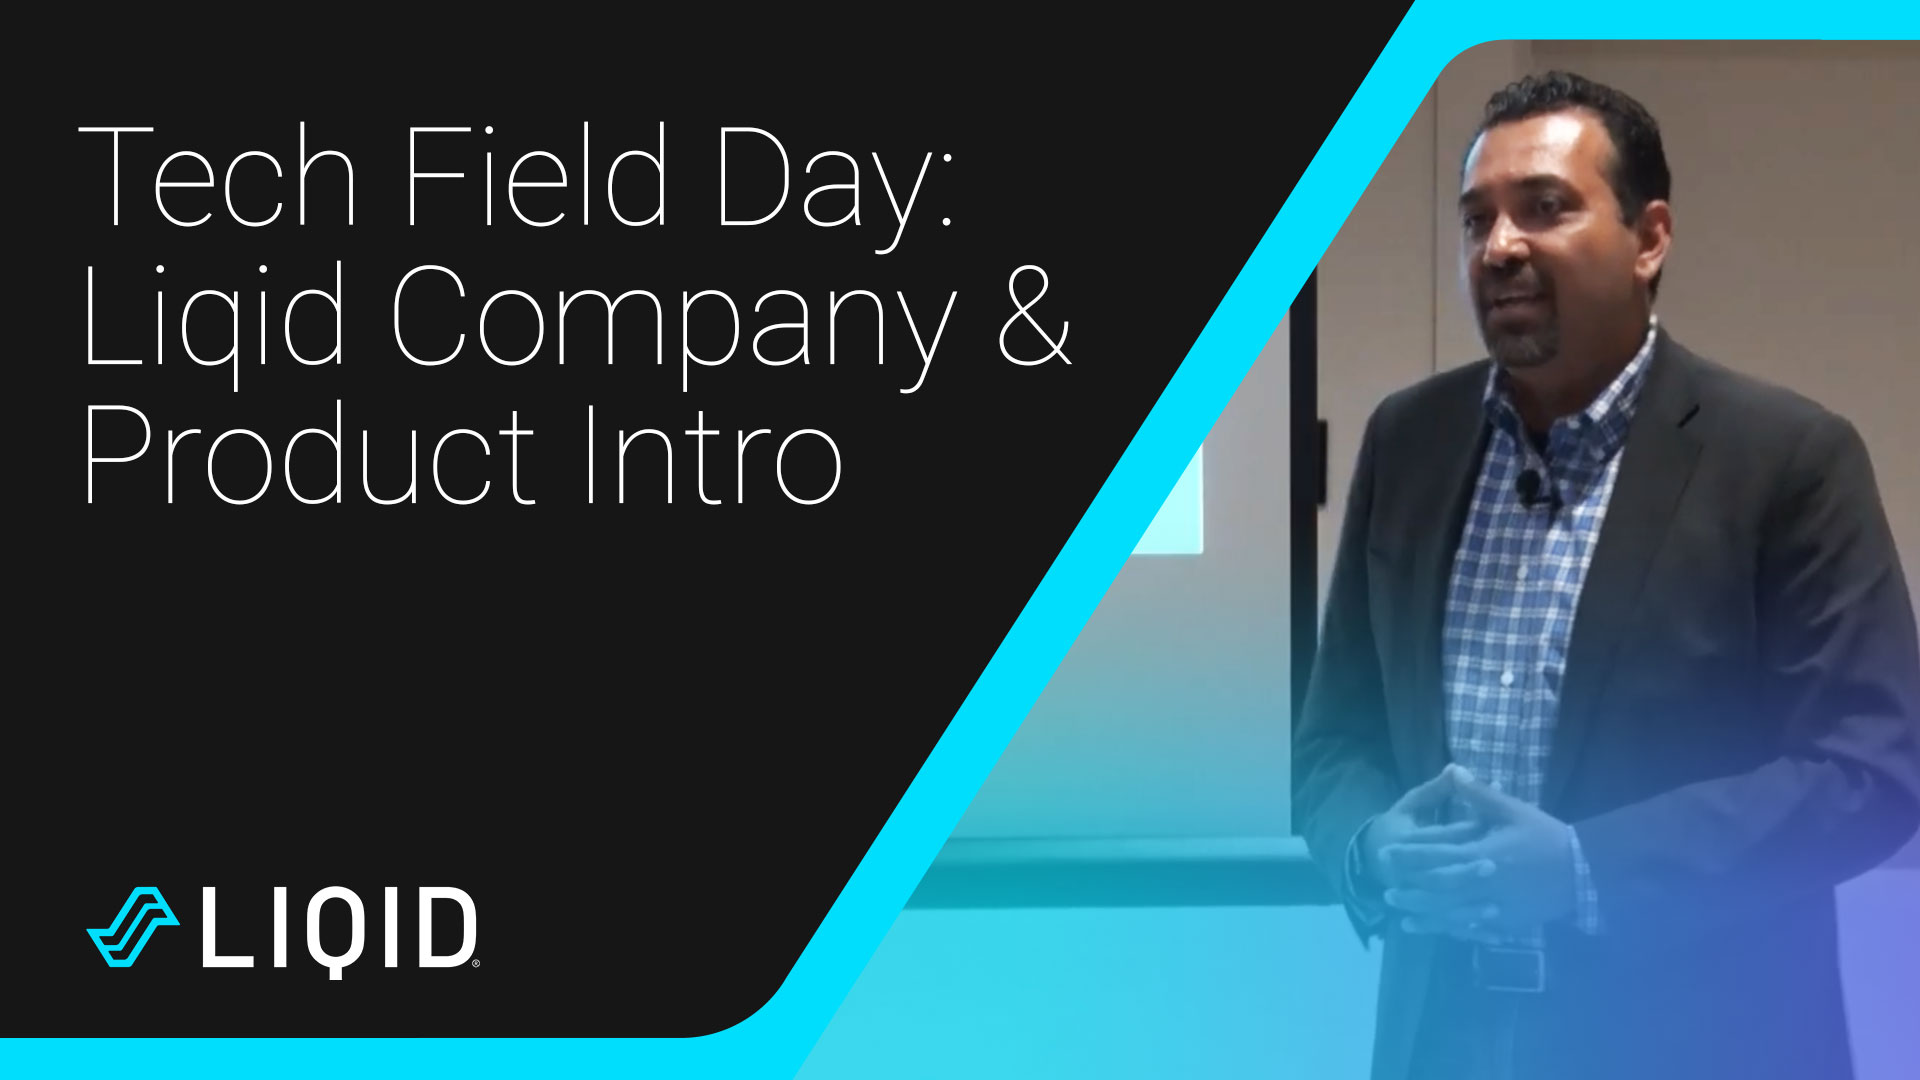 Liqid, the leader in composable infrastructure, at Tech Field Day